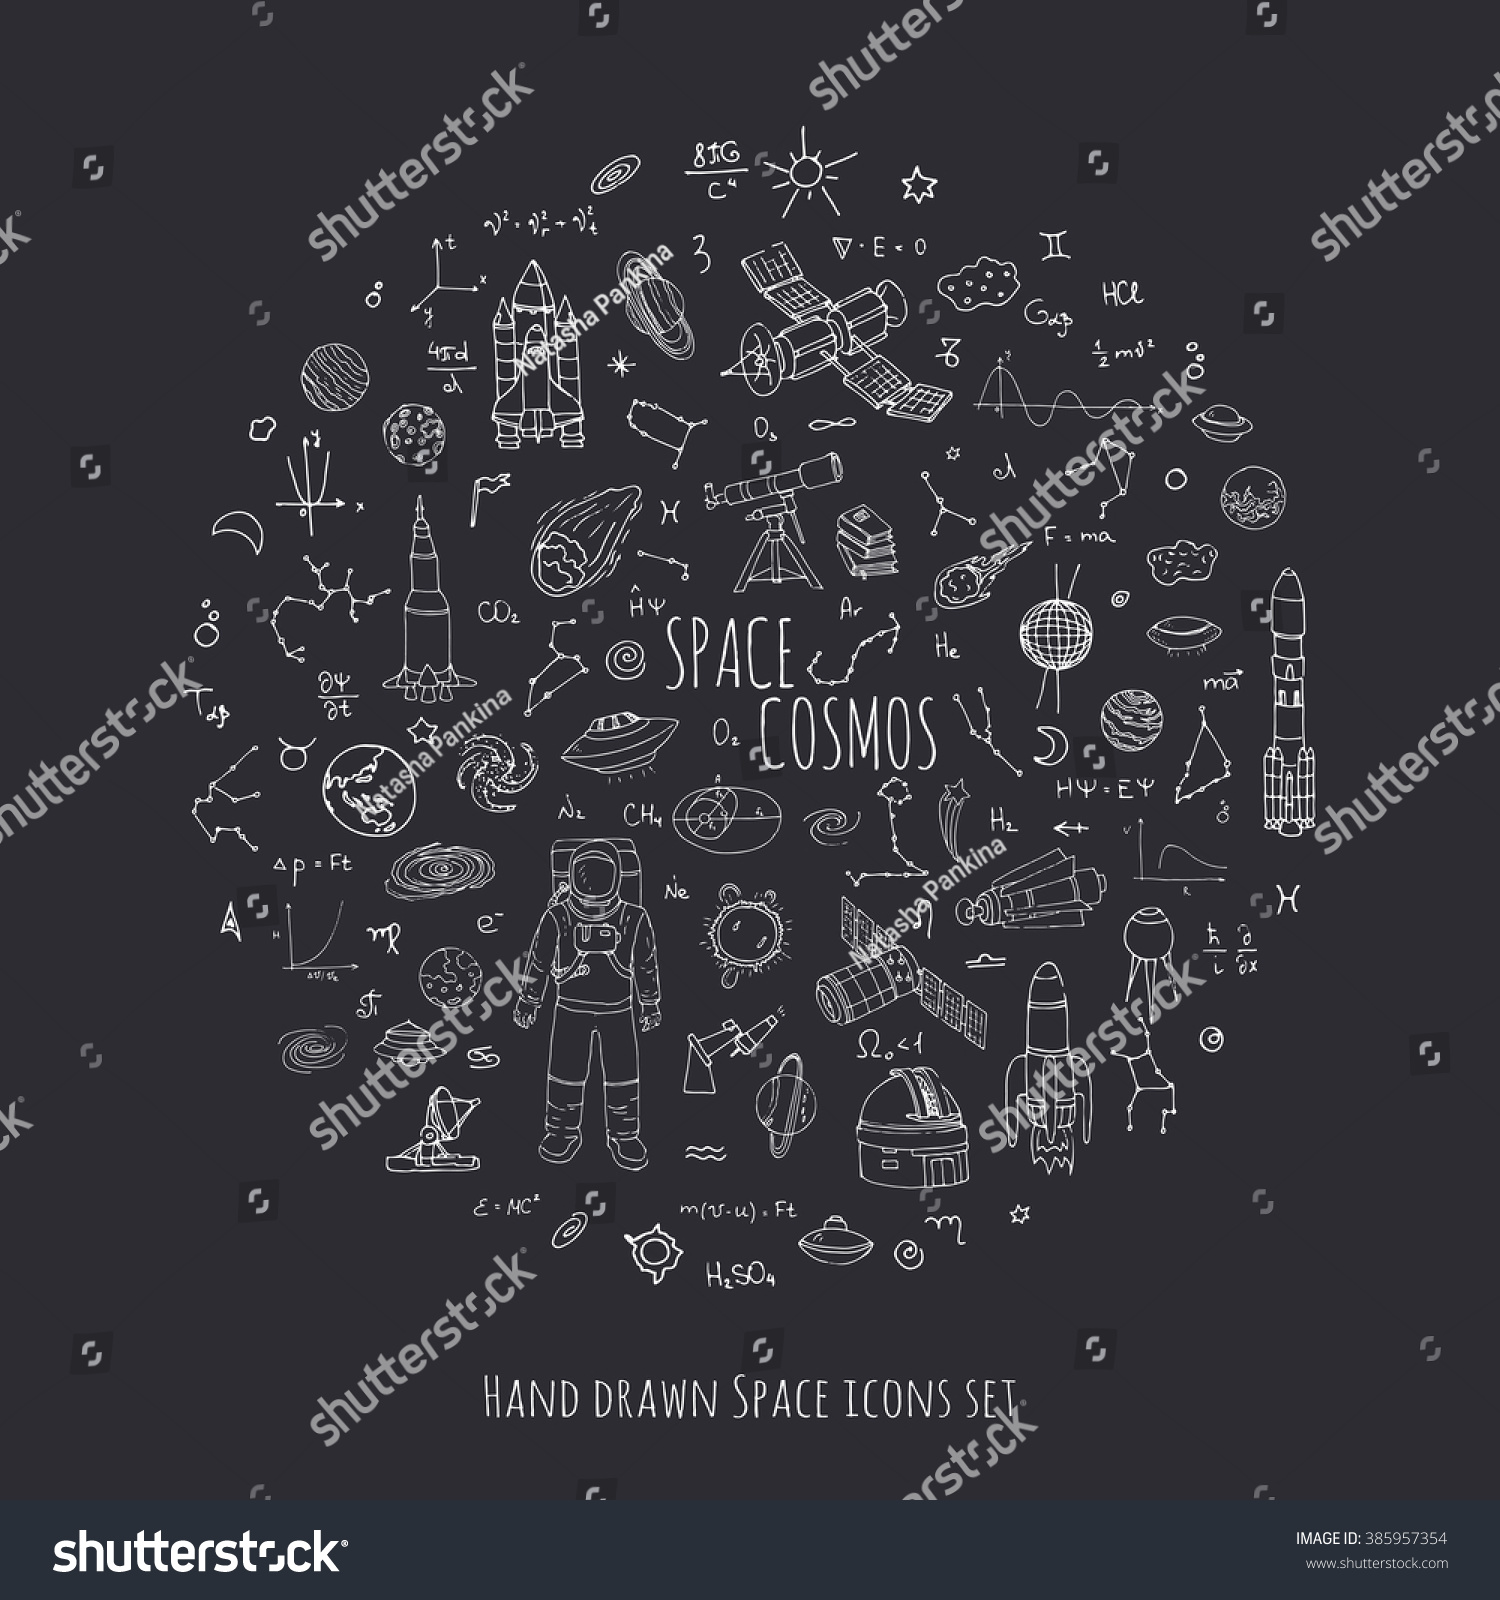 Hand drawn doodle Space and Cosmos set Vector illustration Universe icons Space elements Rocket Space ship symbols collection Solar system Planets Galaxy Milky Way Astronaut Tech freehand icon